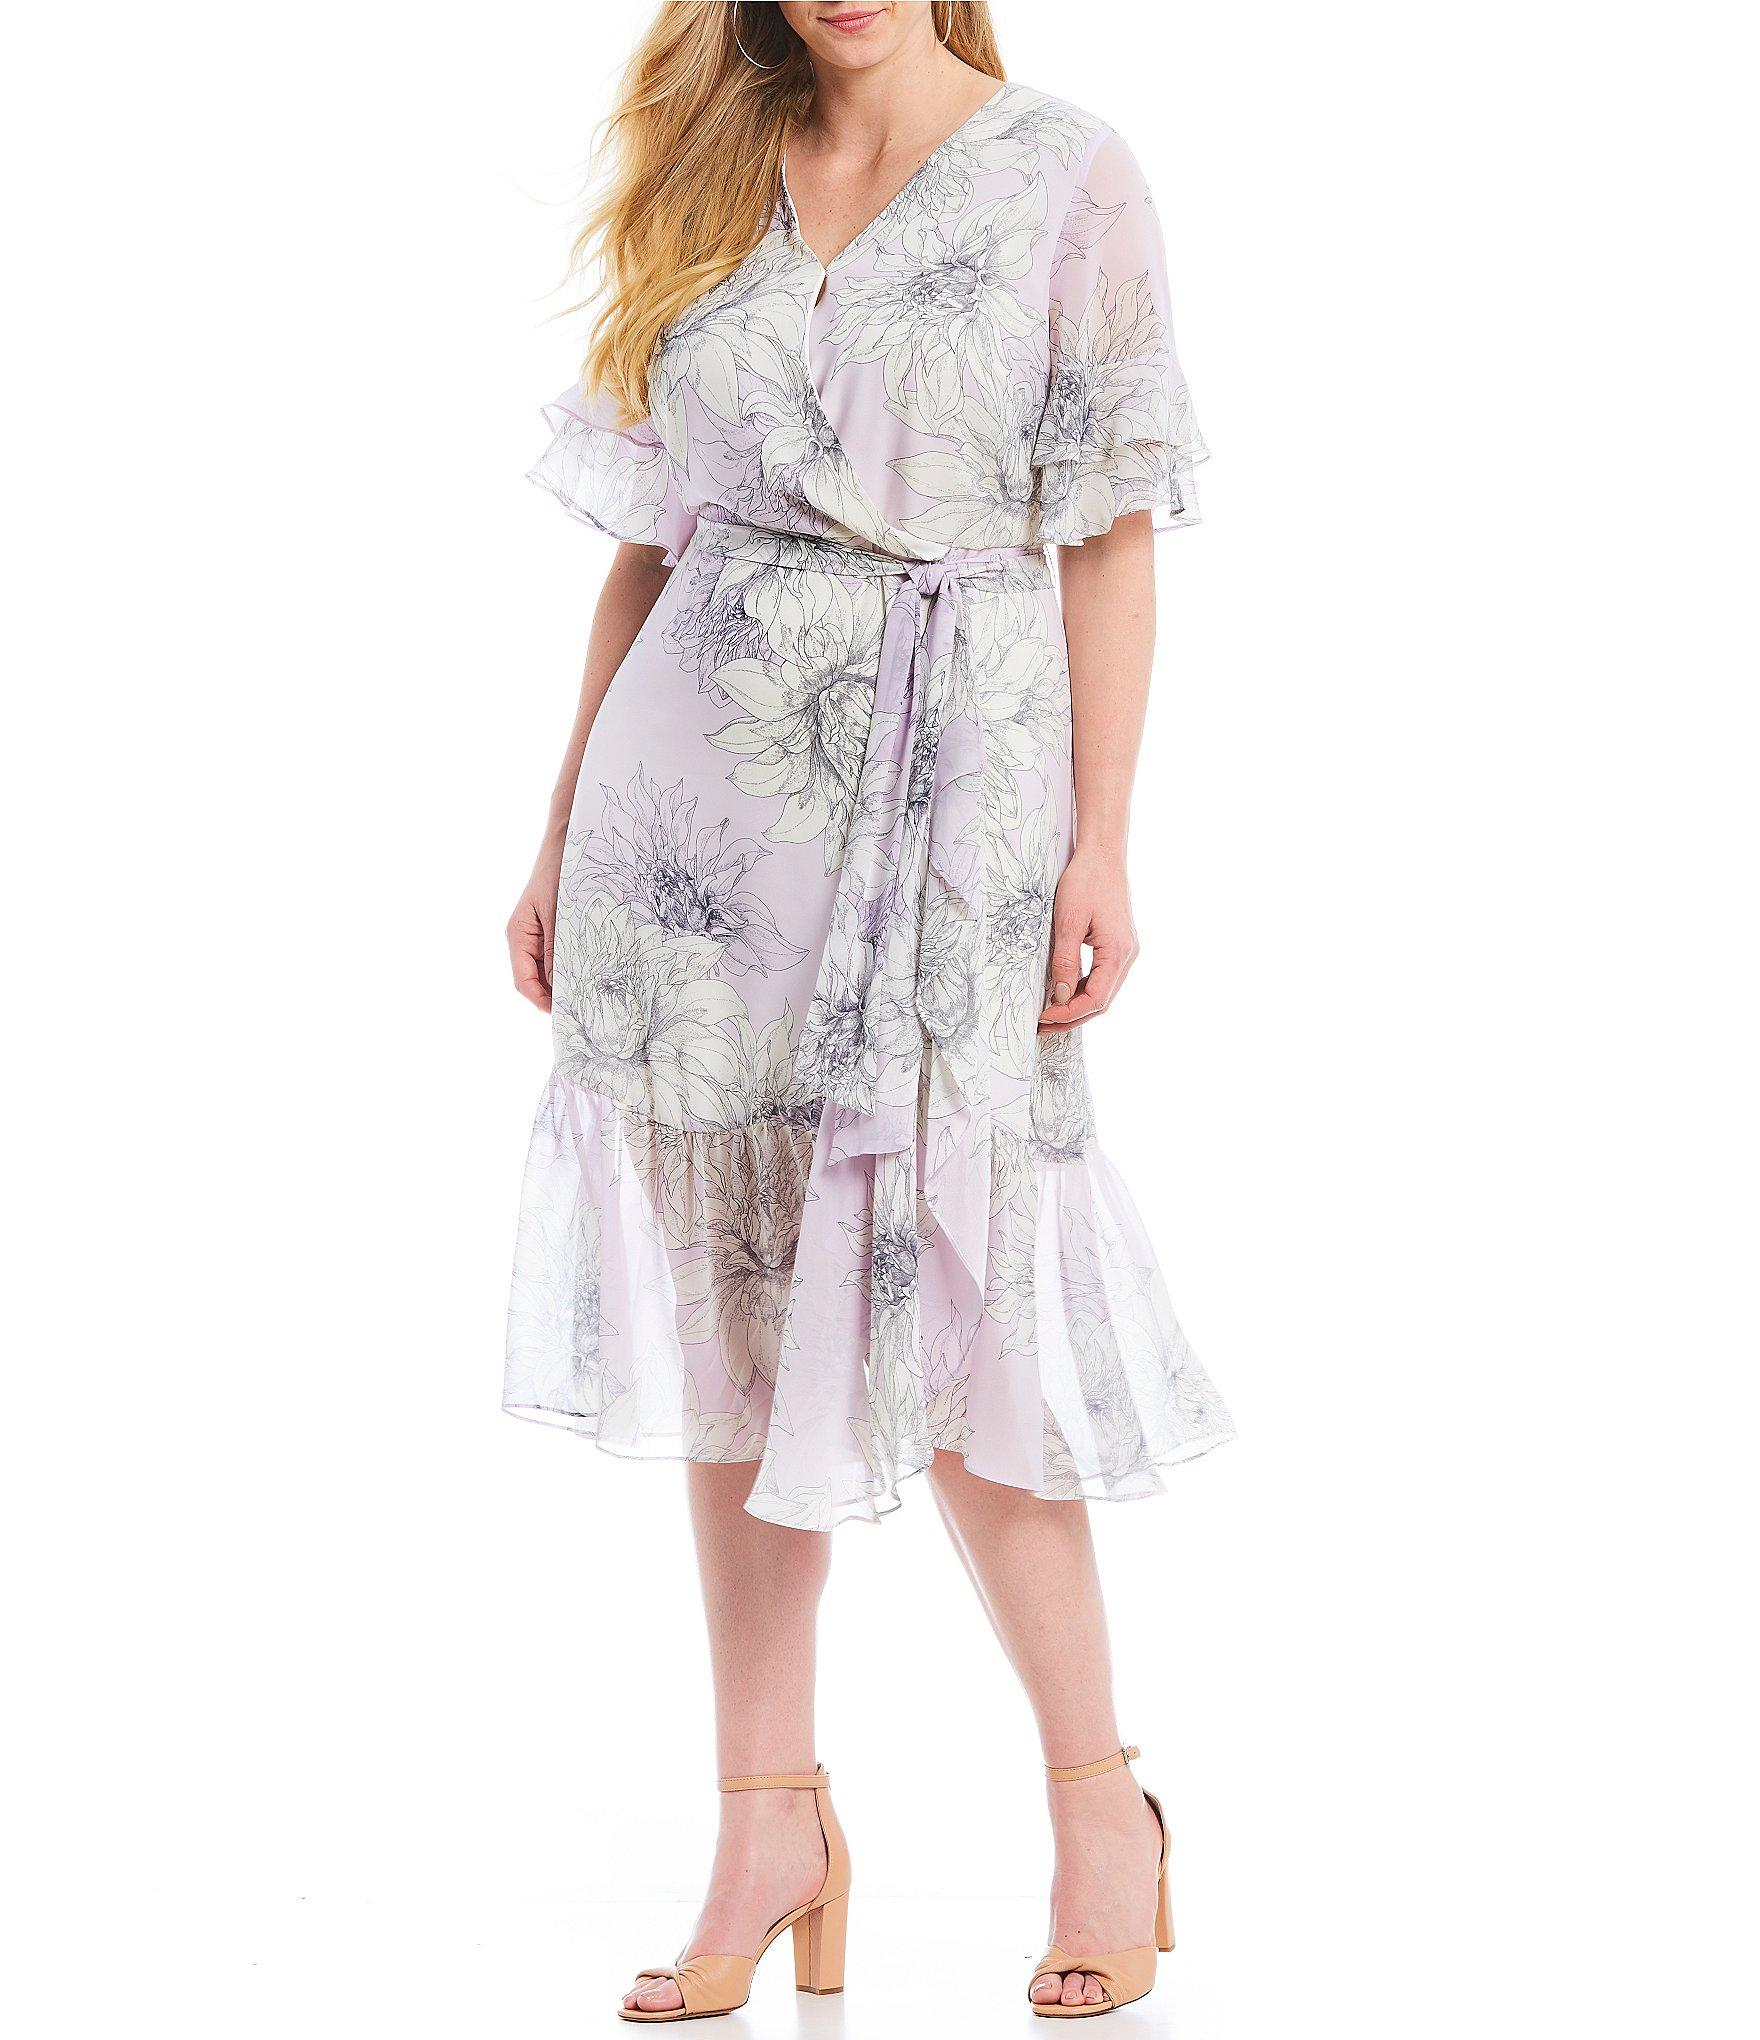 bd6aff66 Vince Camuto. Women's Plus Size Floral Print Tiered Ruffle Short Sleeve  Midi Length Wrap Dress